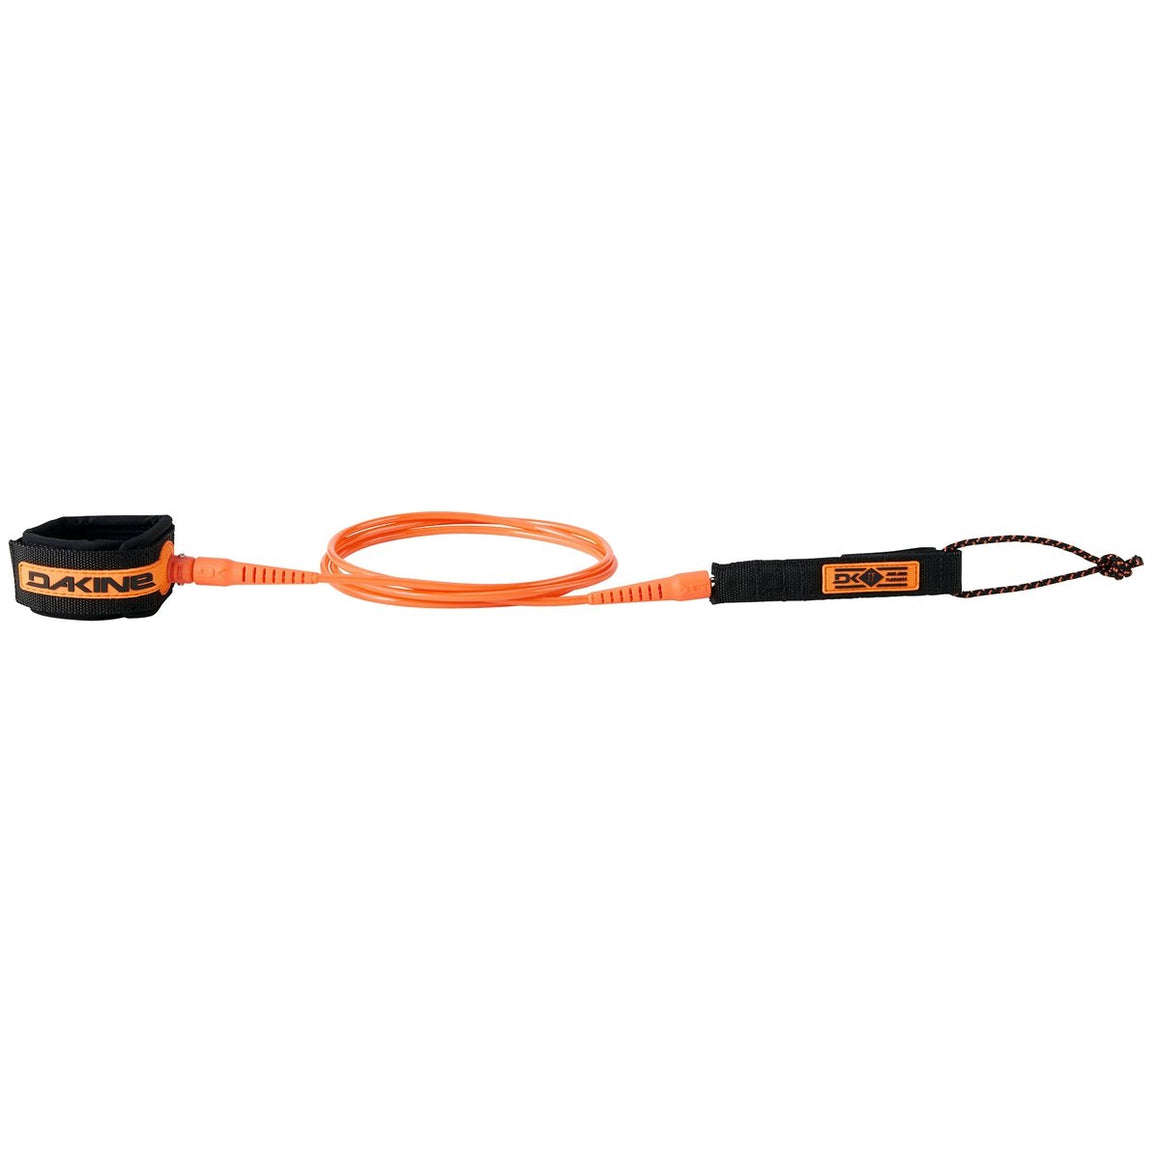 "Leashes - Dakine - JJF Comp 6' x 3/16"" Leash (Black/Orange)"